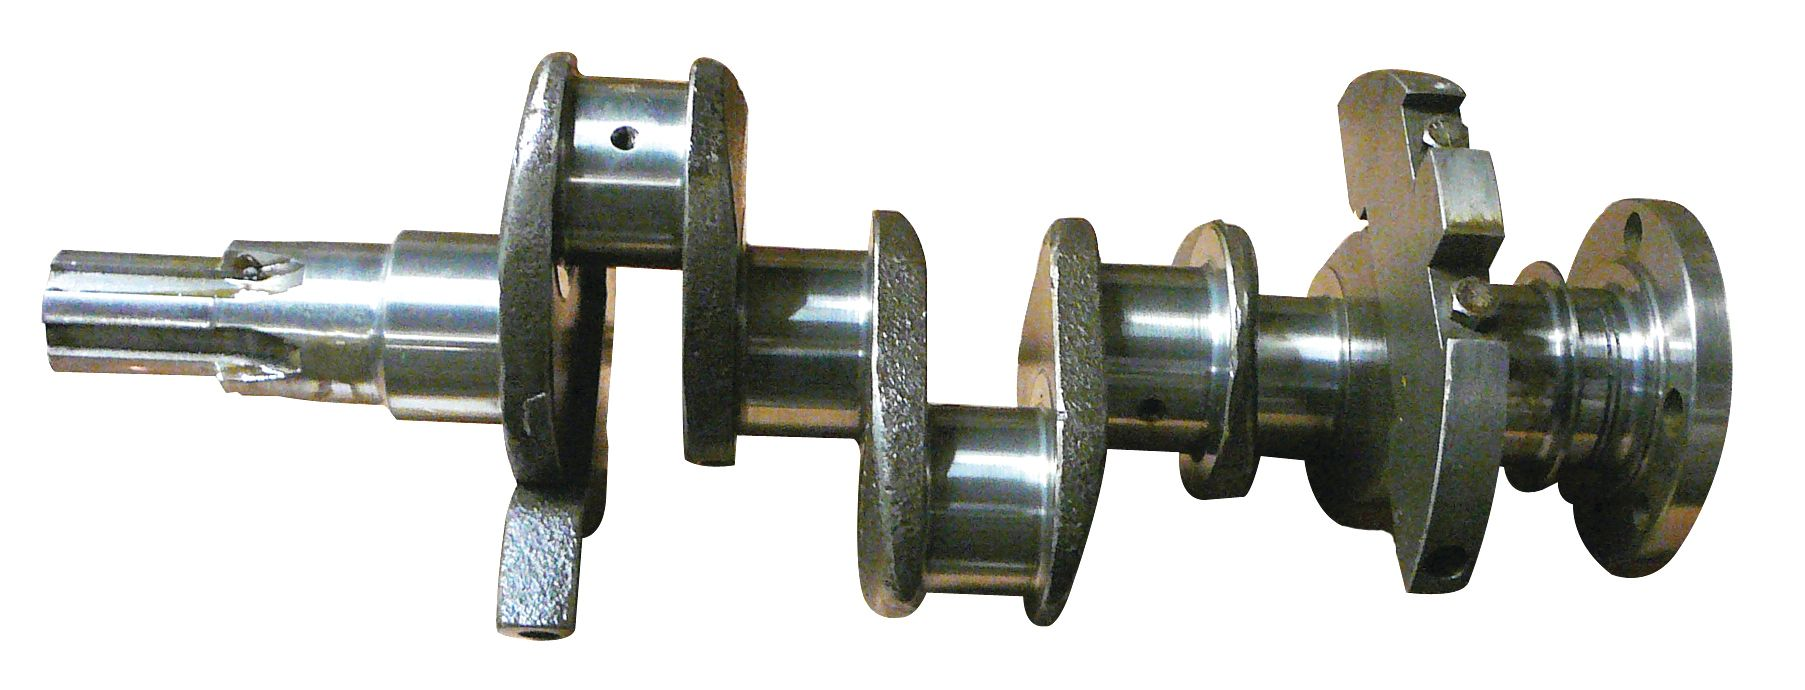 DAVID BROWN CRANKSHAFT 3CYL 61550